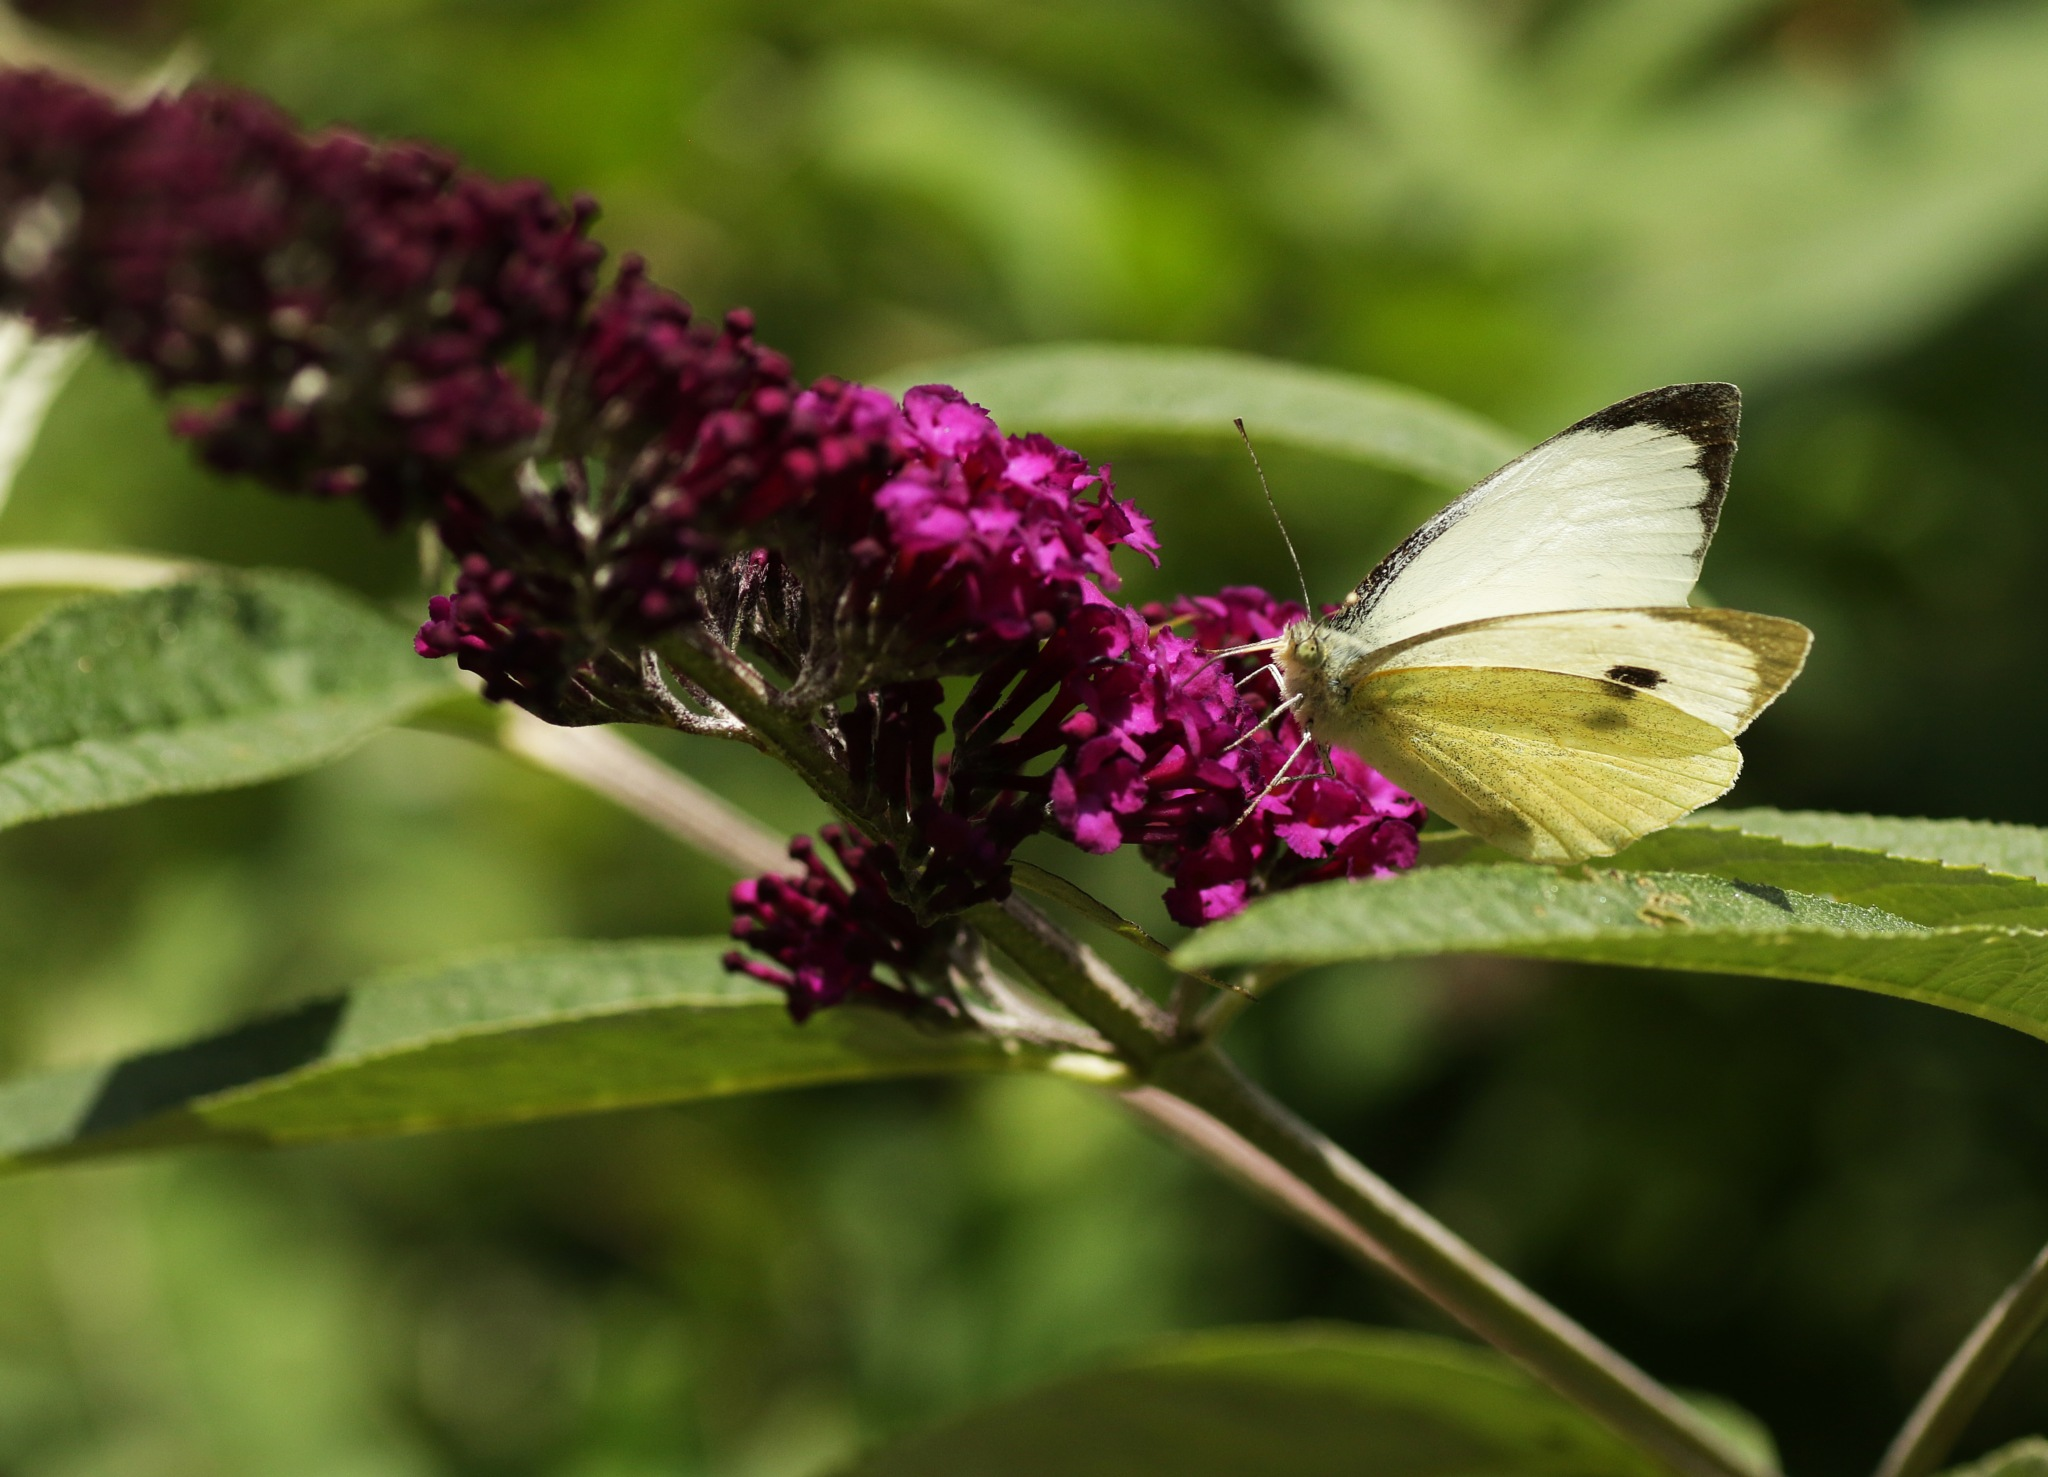 large cabbage white butterfly by Tineke Deuntje